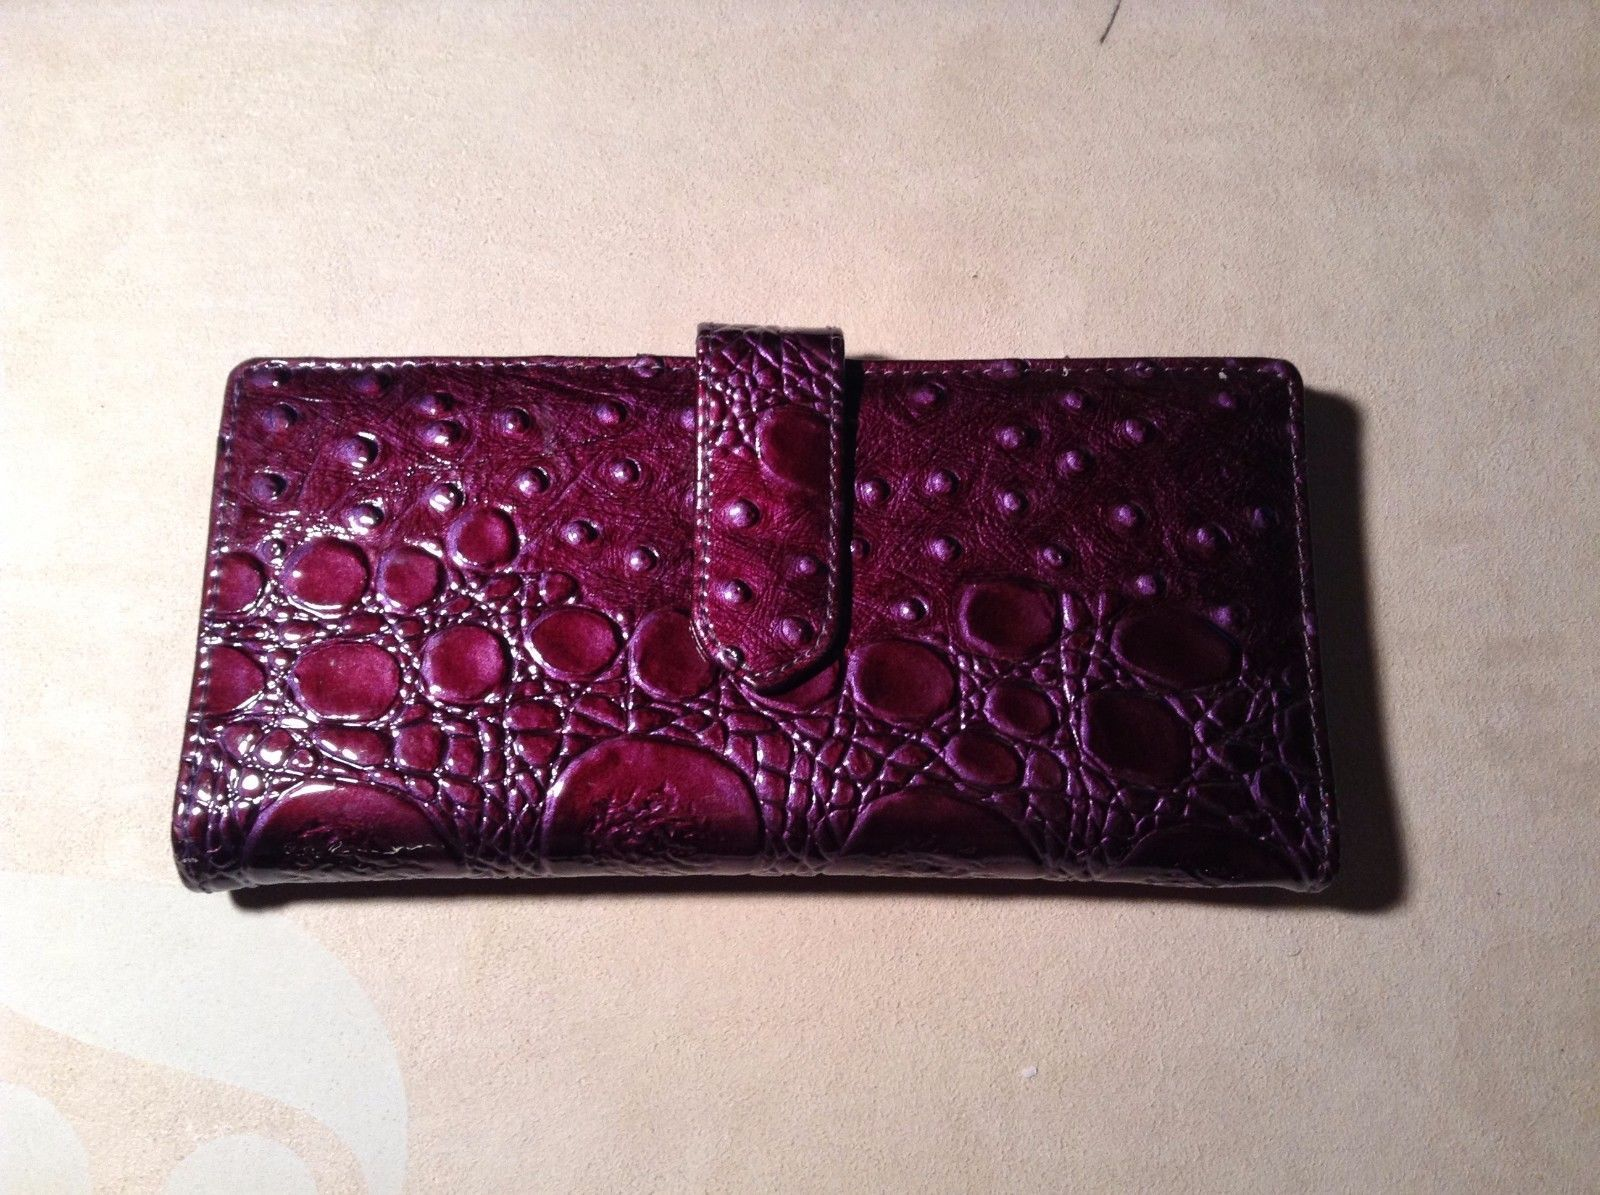 New Kristine Purple Reptile Pattern Imitation Leather Bifold Wallet Chip Lock